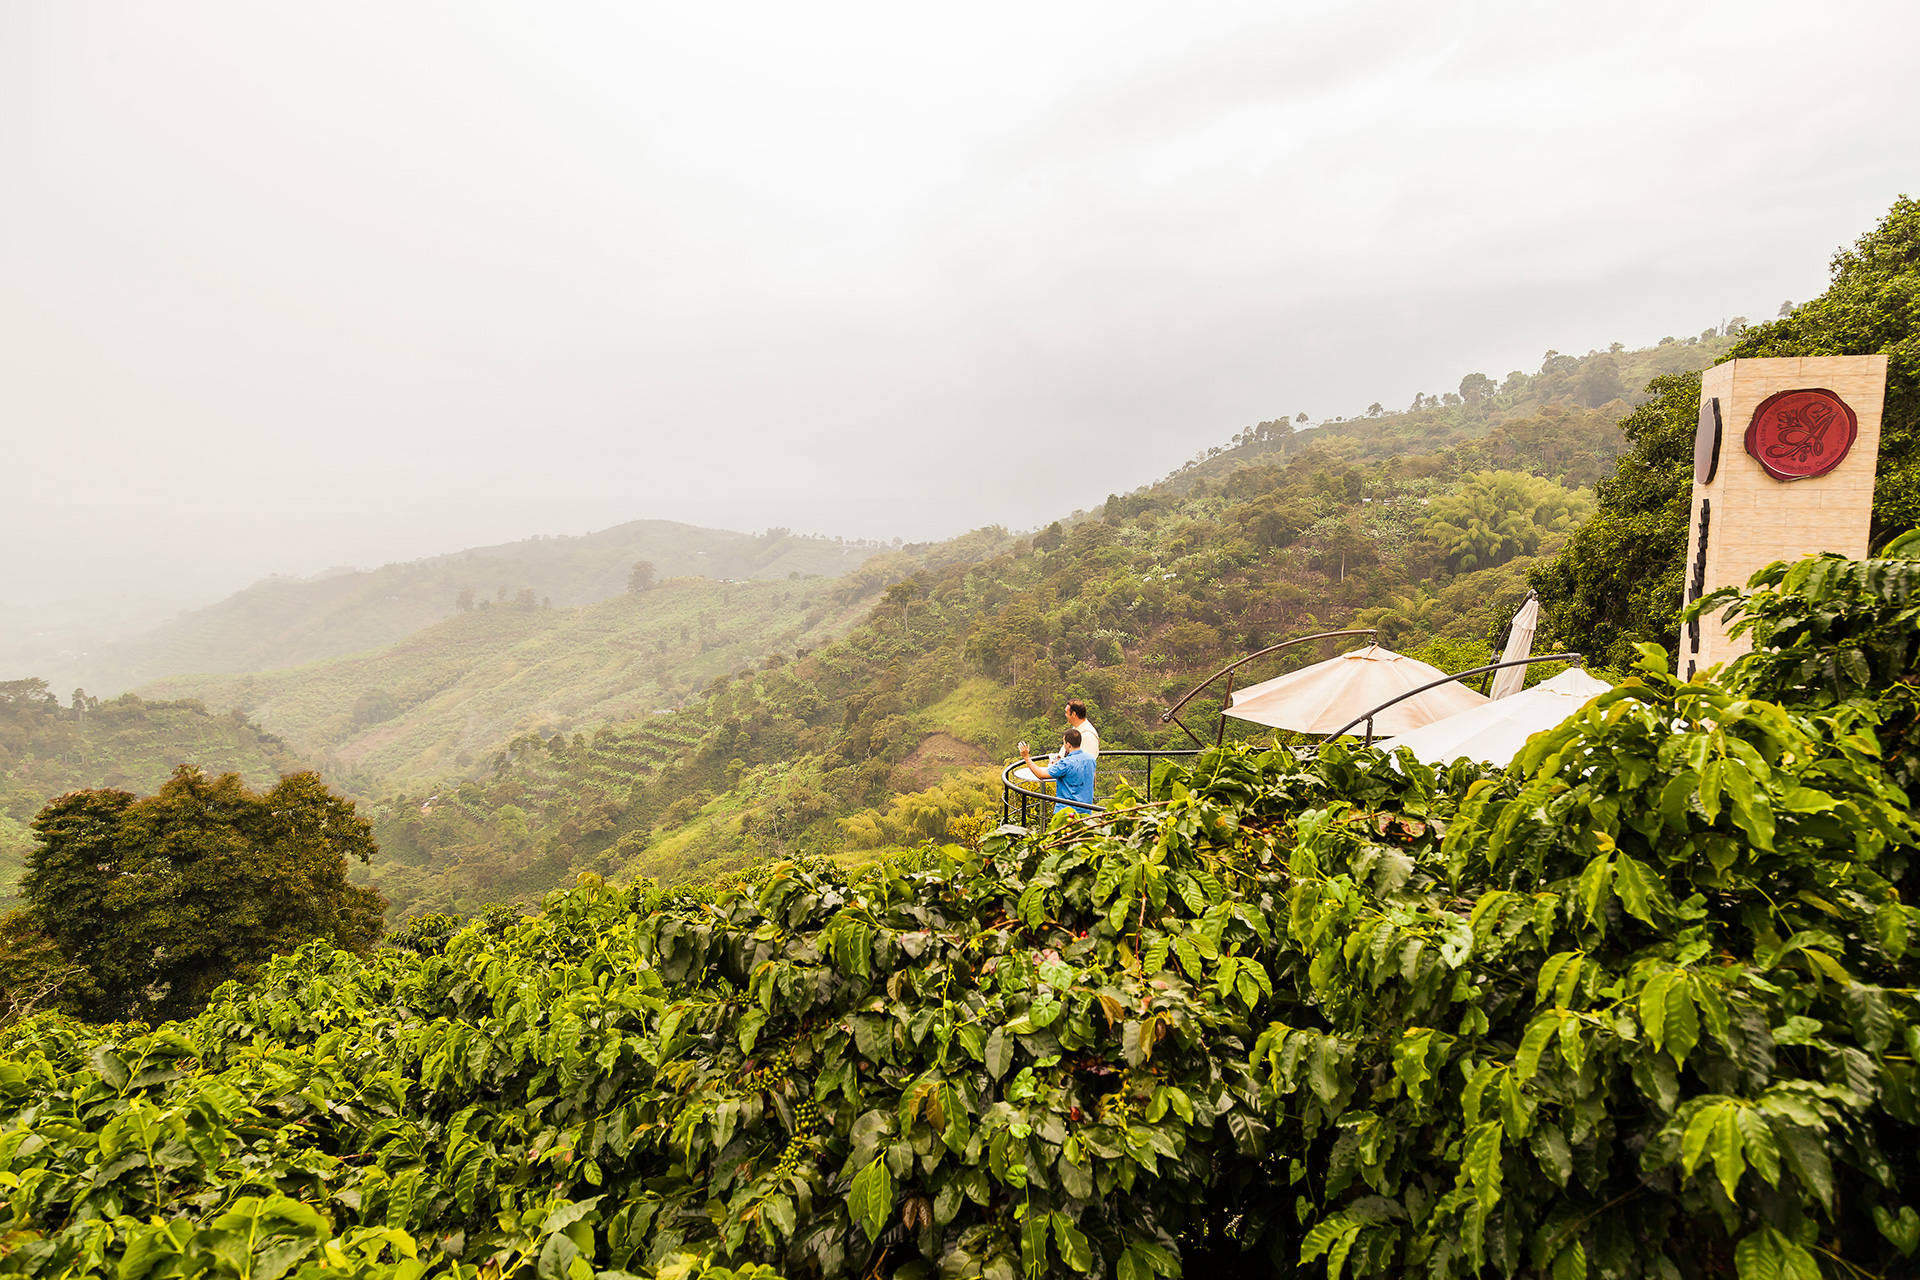 Atop A Mountain, Colombia's Café San Alberto Takes Cues From Vineyards photo